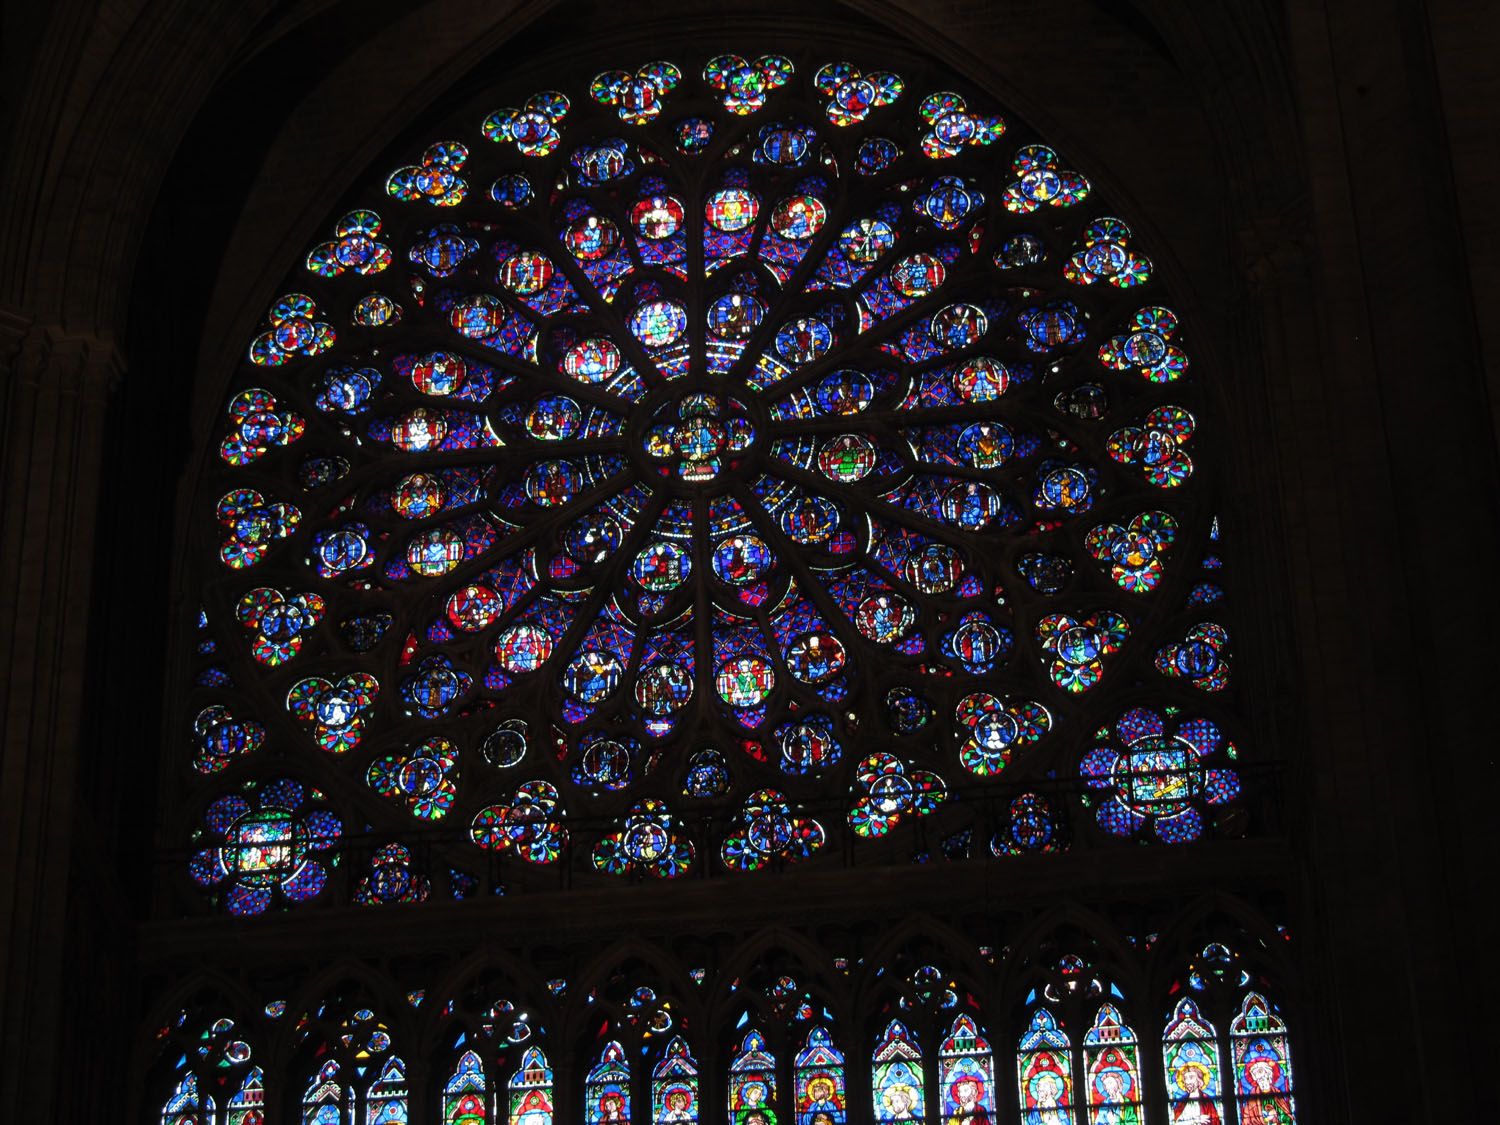 France-Paris-Notre-Dame-Stained-Glass